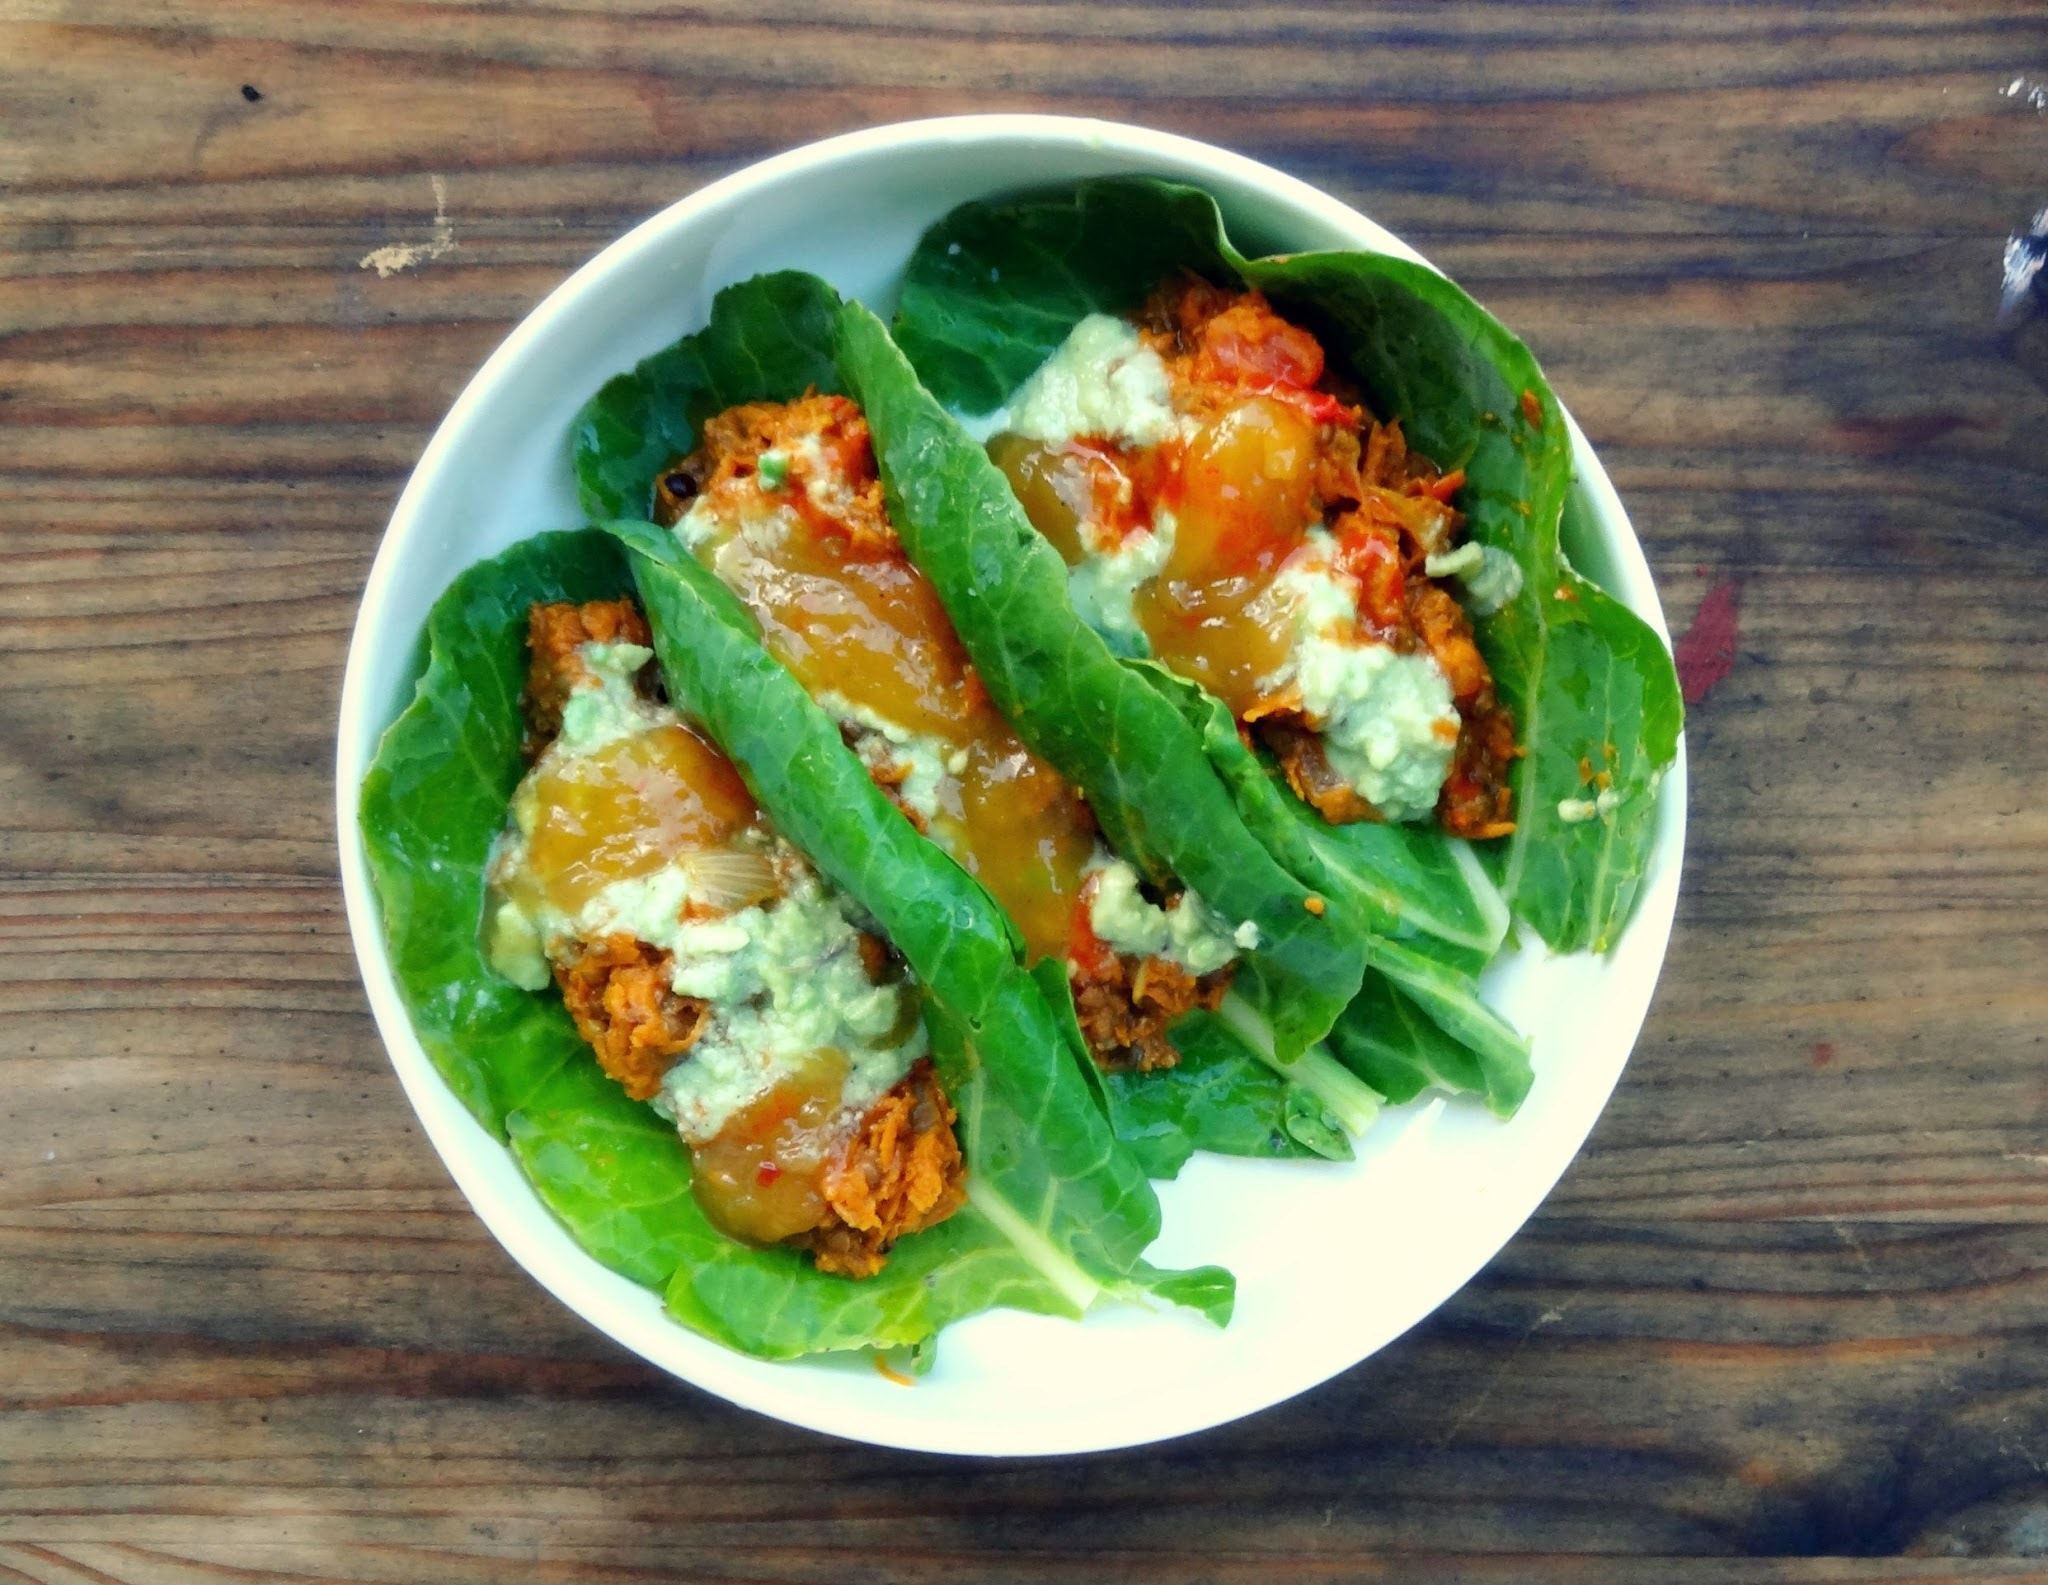 Indian Fusion Green Tacos (gluten-free, vegan, grain-free)